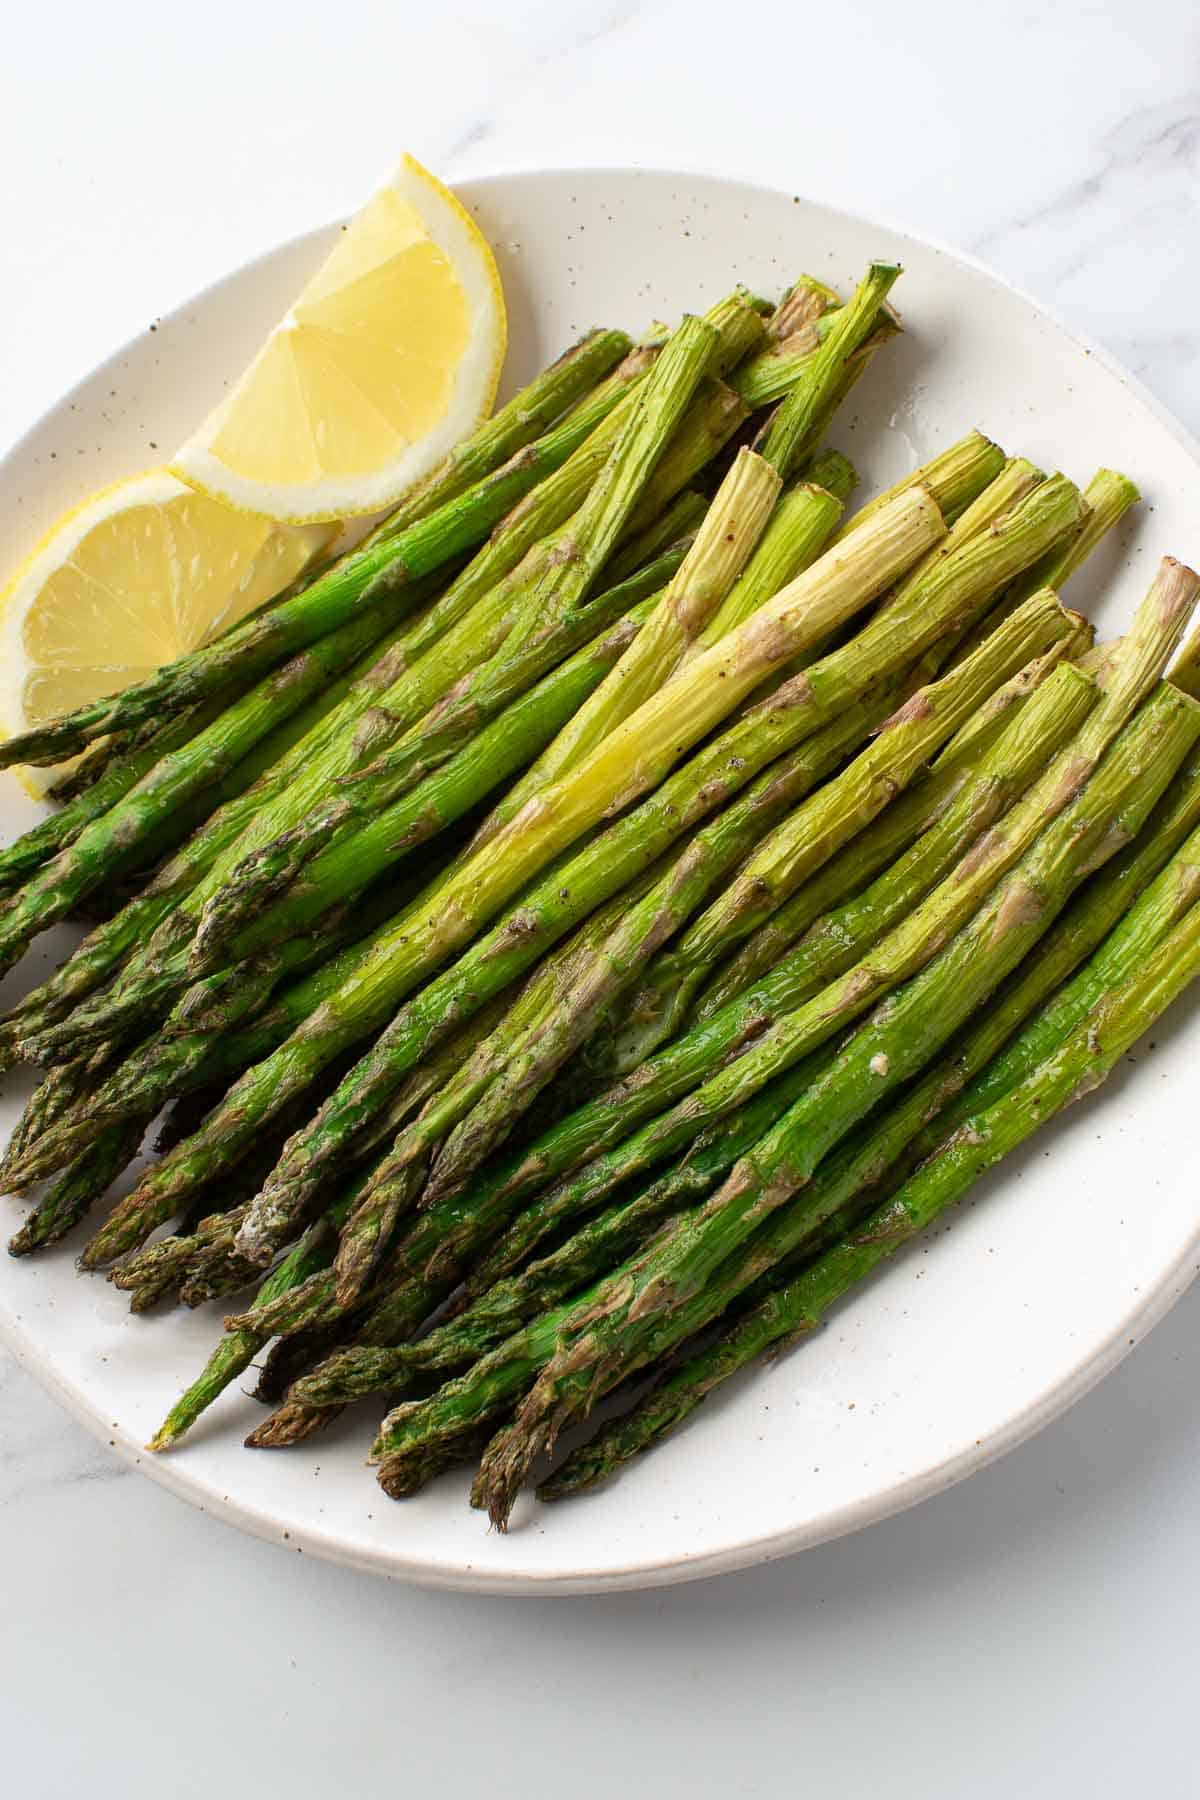 Asparagus cooked with lemon.